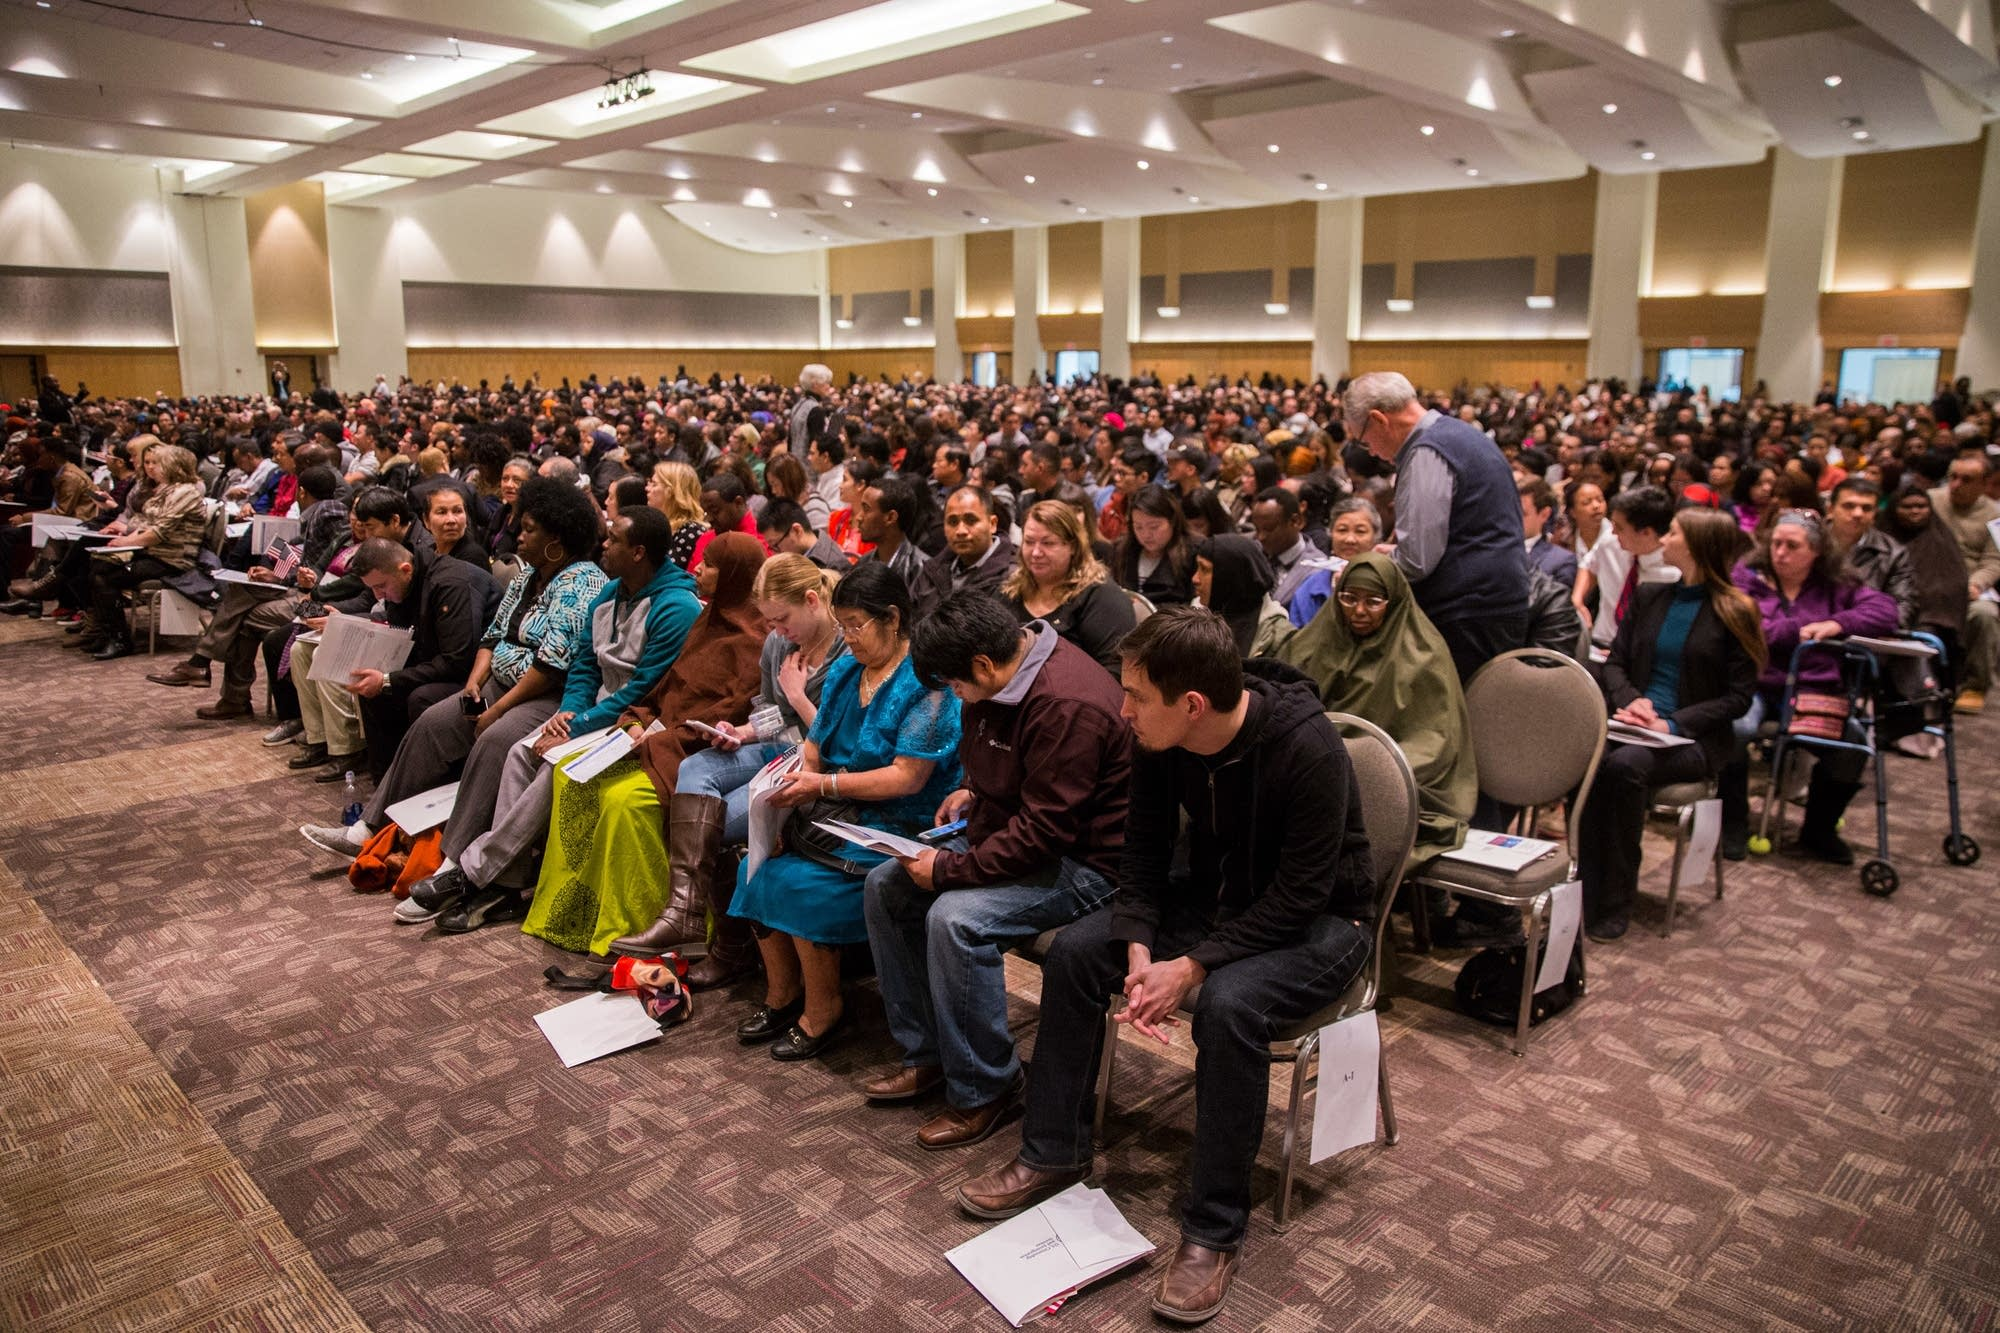 878 soon-to-be U.S. citizens wait to be naturalized.